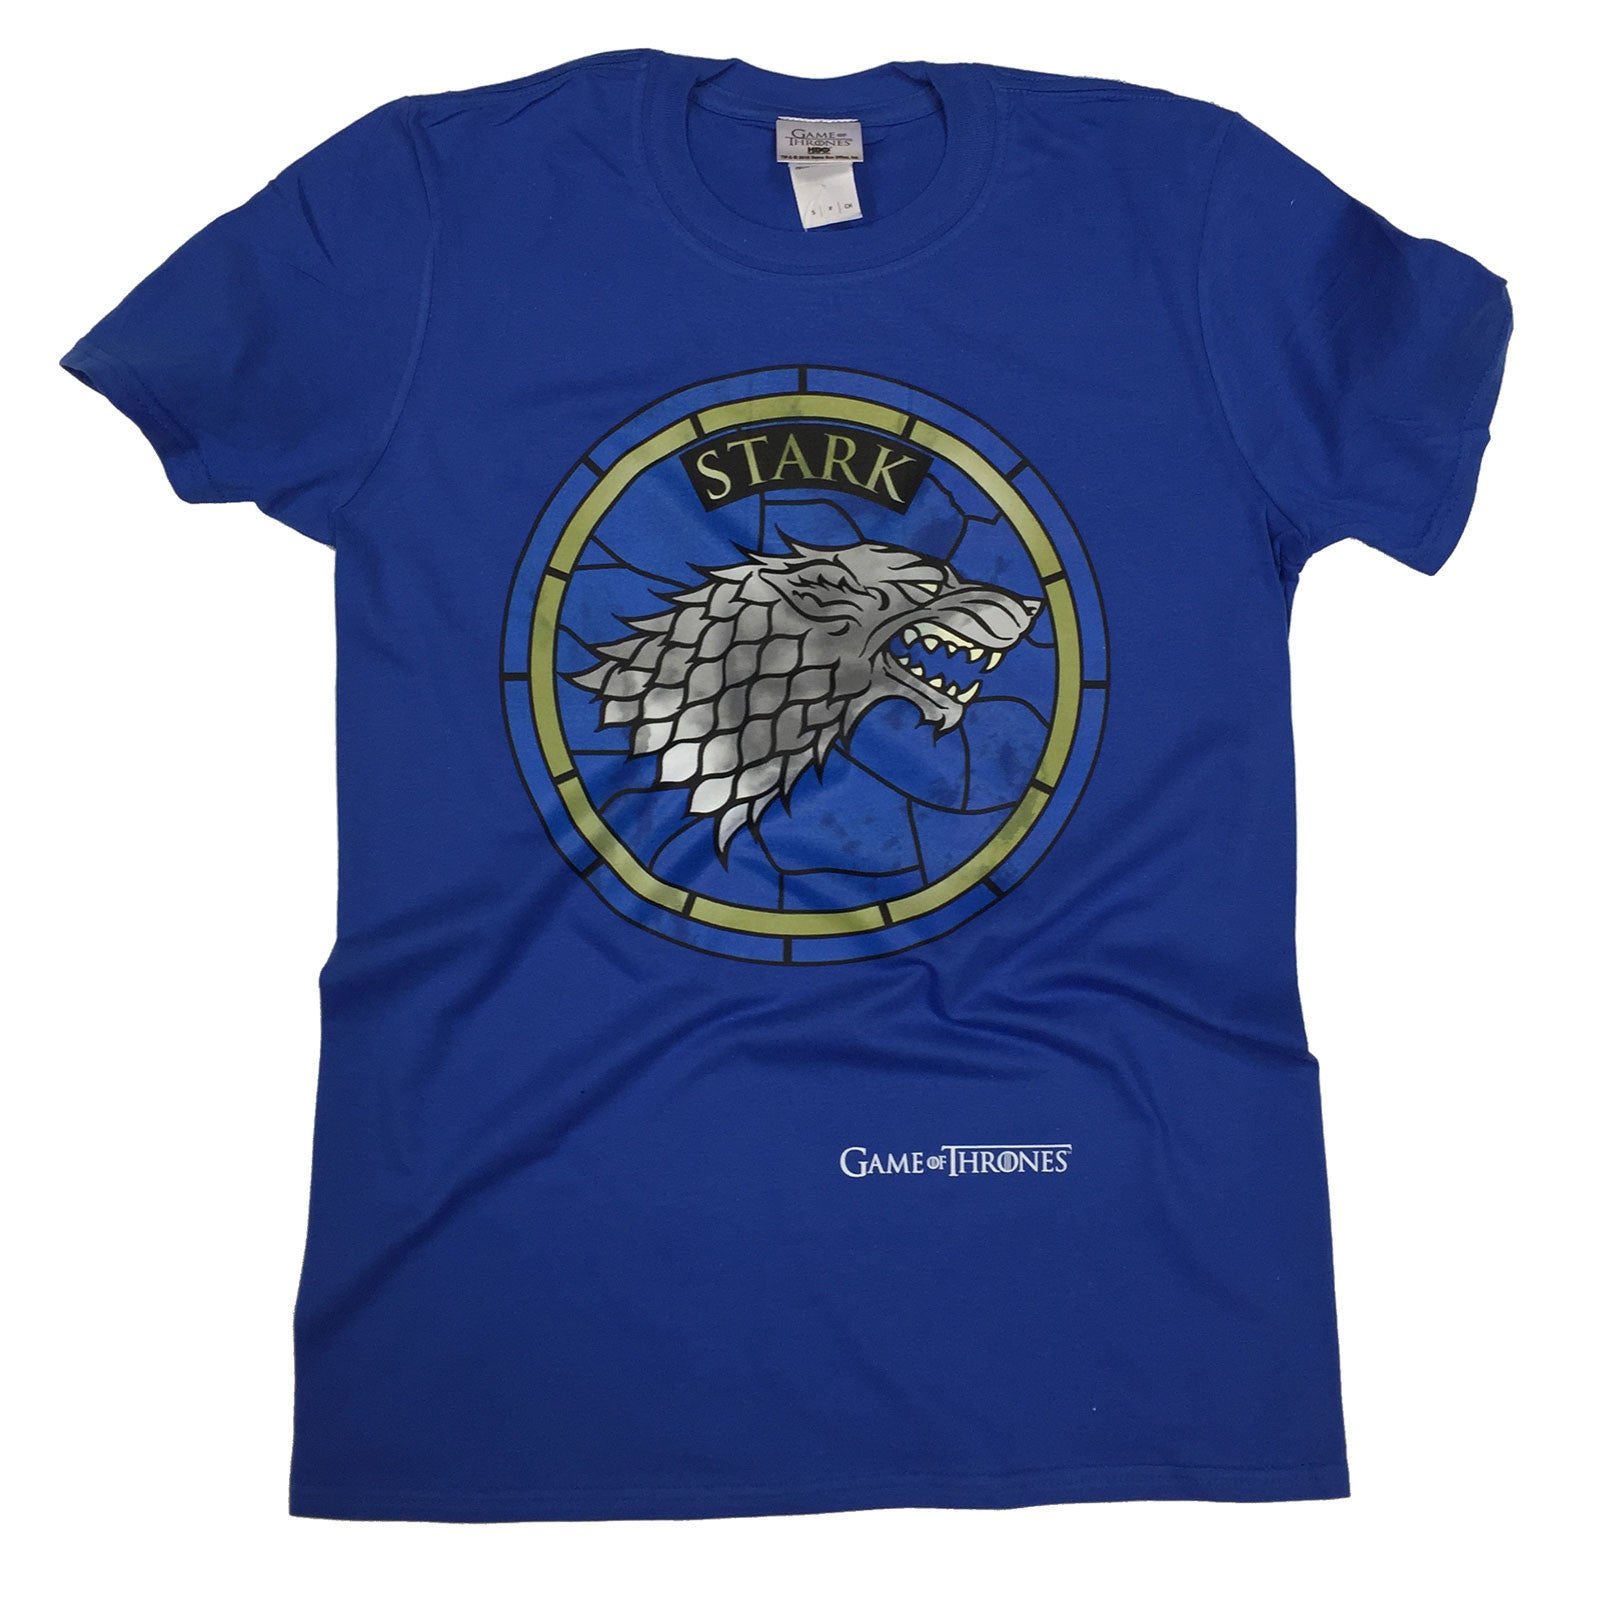 NEW FOOTAGE + NEW T-SHIRTS: Game of Thrones season 6